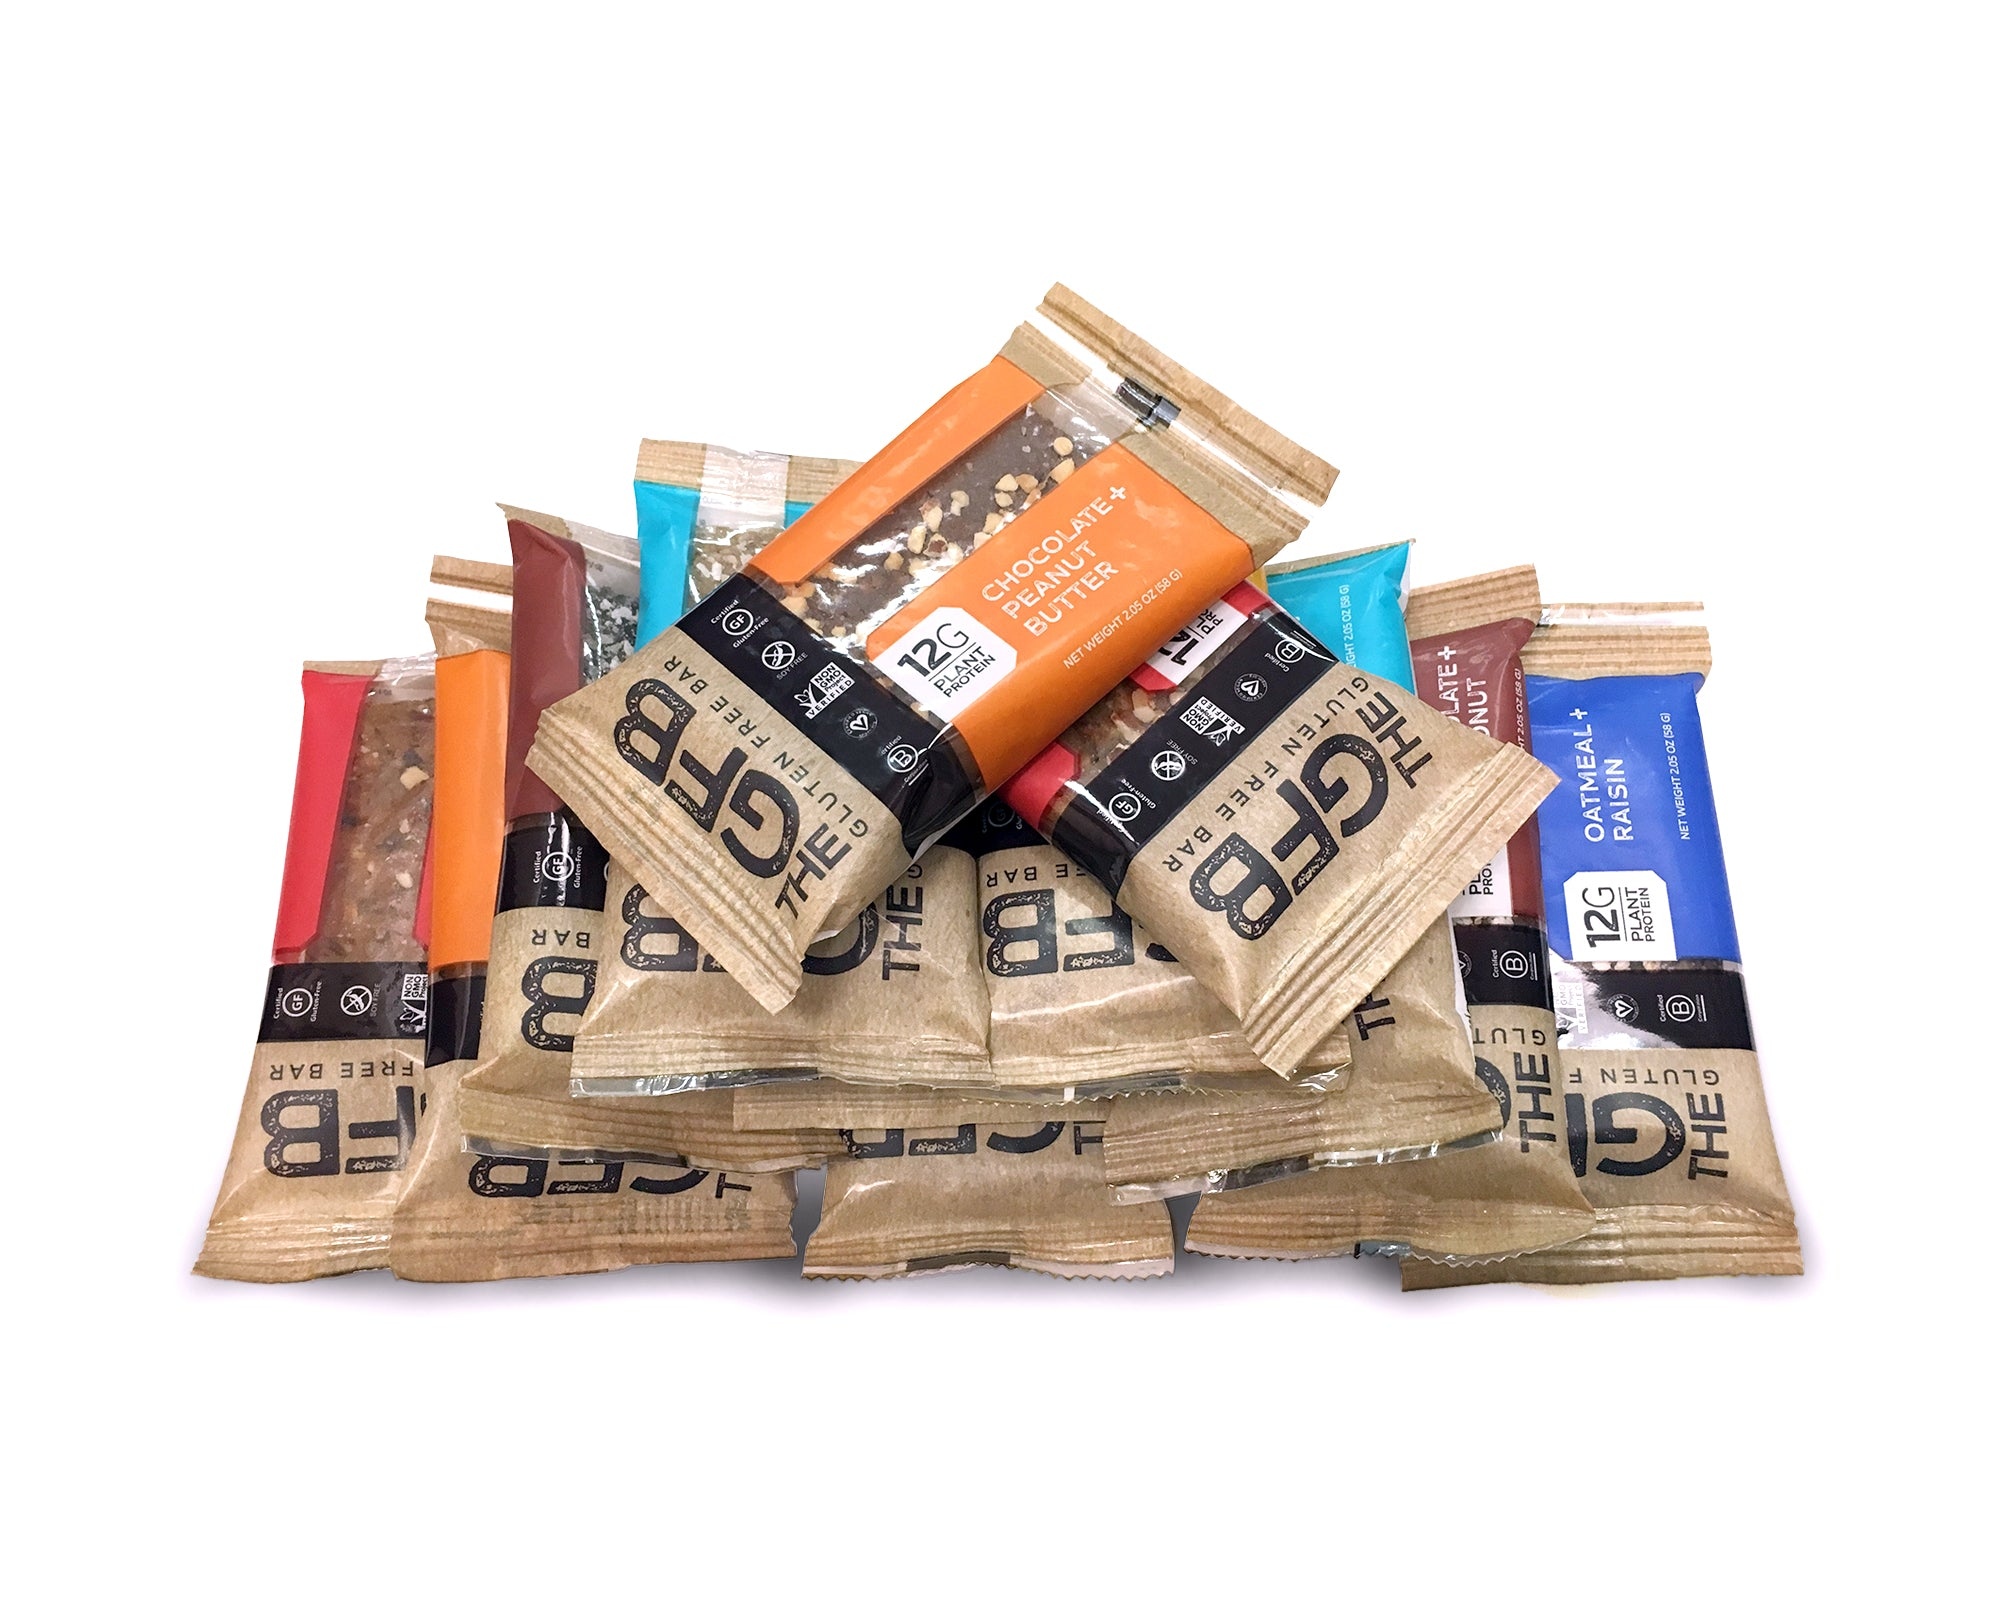 CUSTOM Case - Bars (Case of 12) - Special Offer - The GFB - The Gluten Free Bar